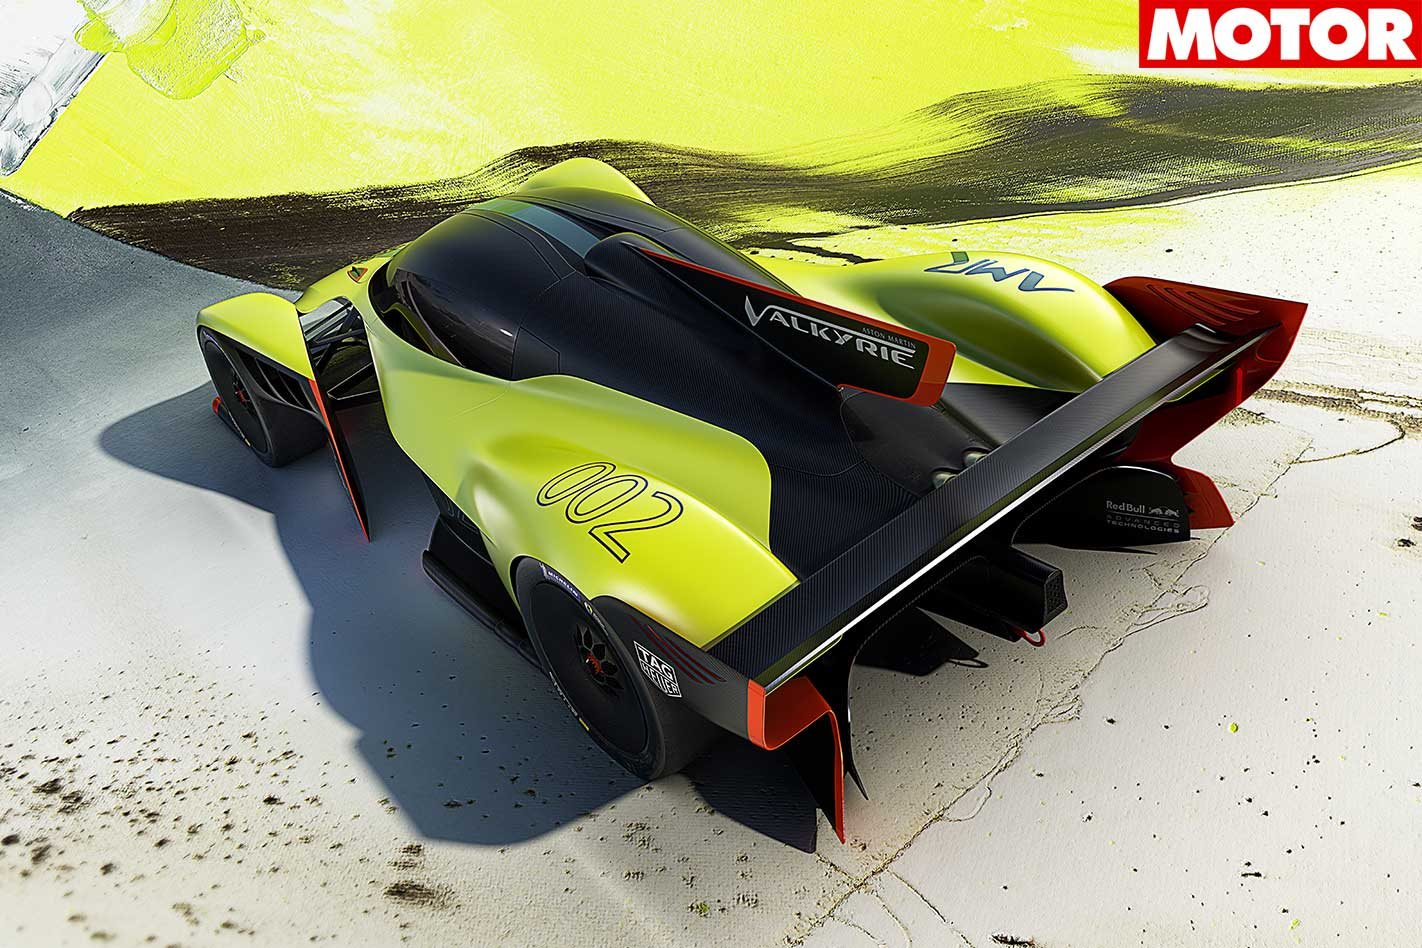 Aston Martin presented the tuning version of the hypercar Valkyrie